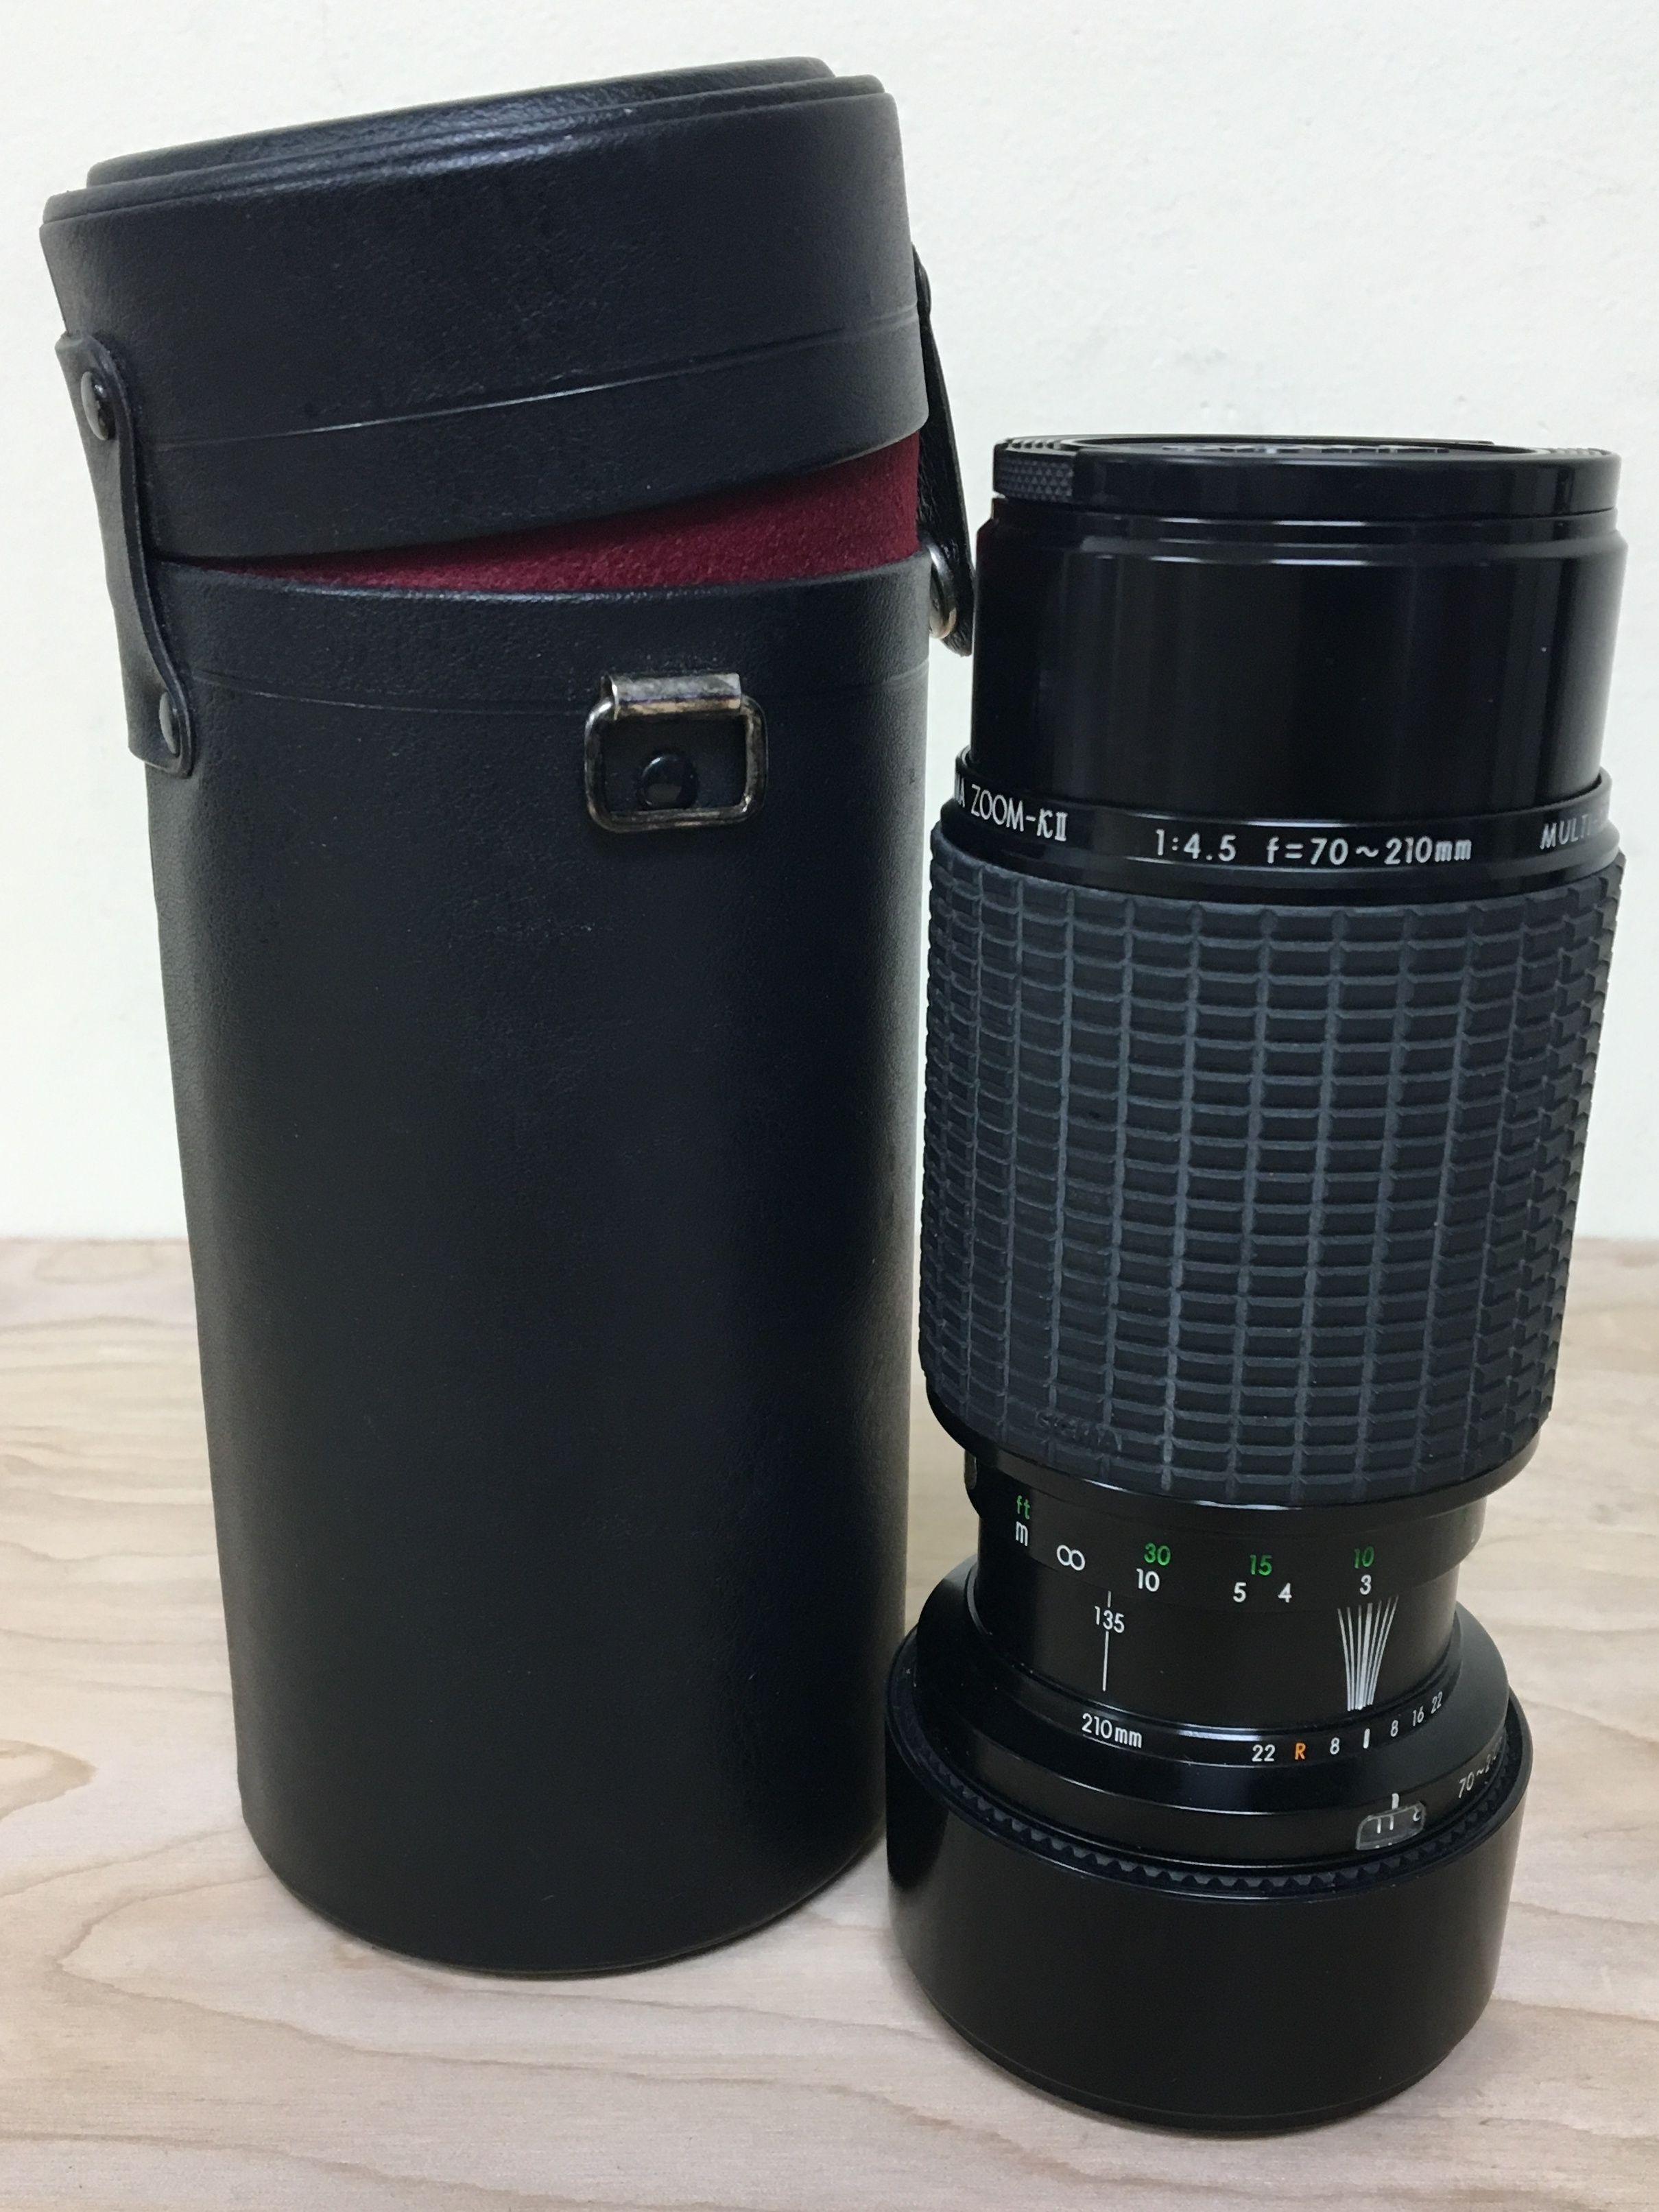 SIGMA CAMERA LENS - ZOOM-KII 70-210MM - COMES WITH CASE